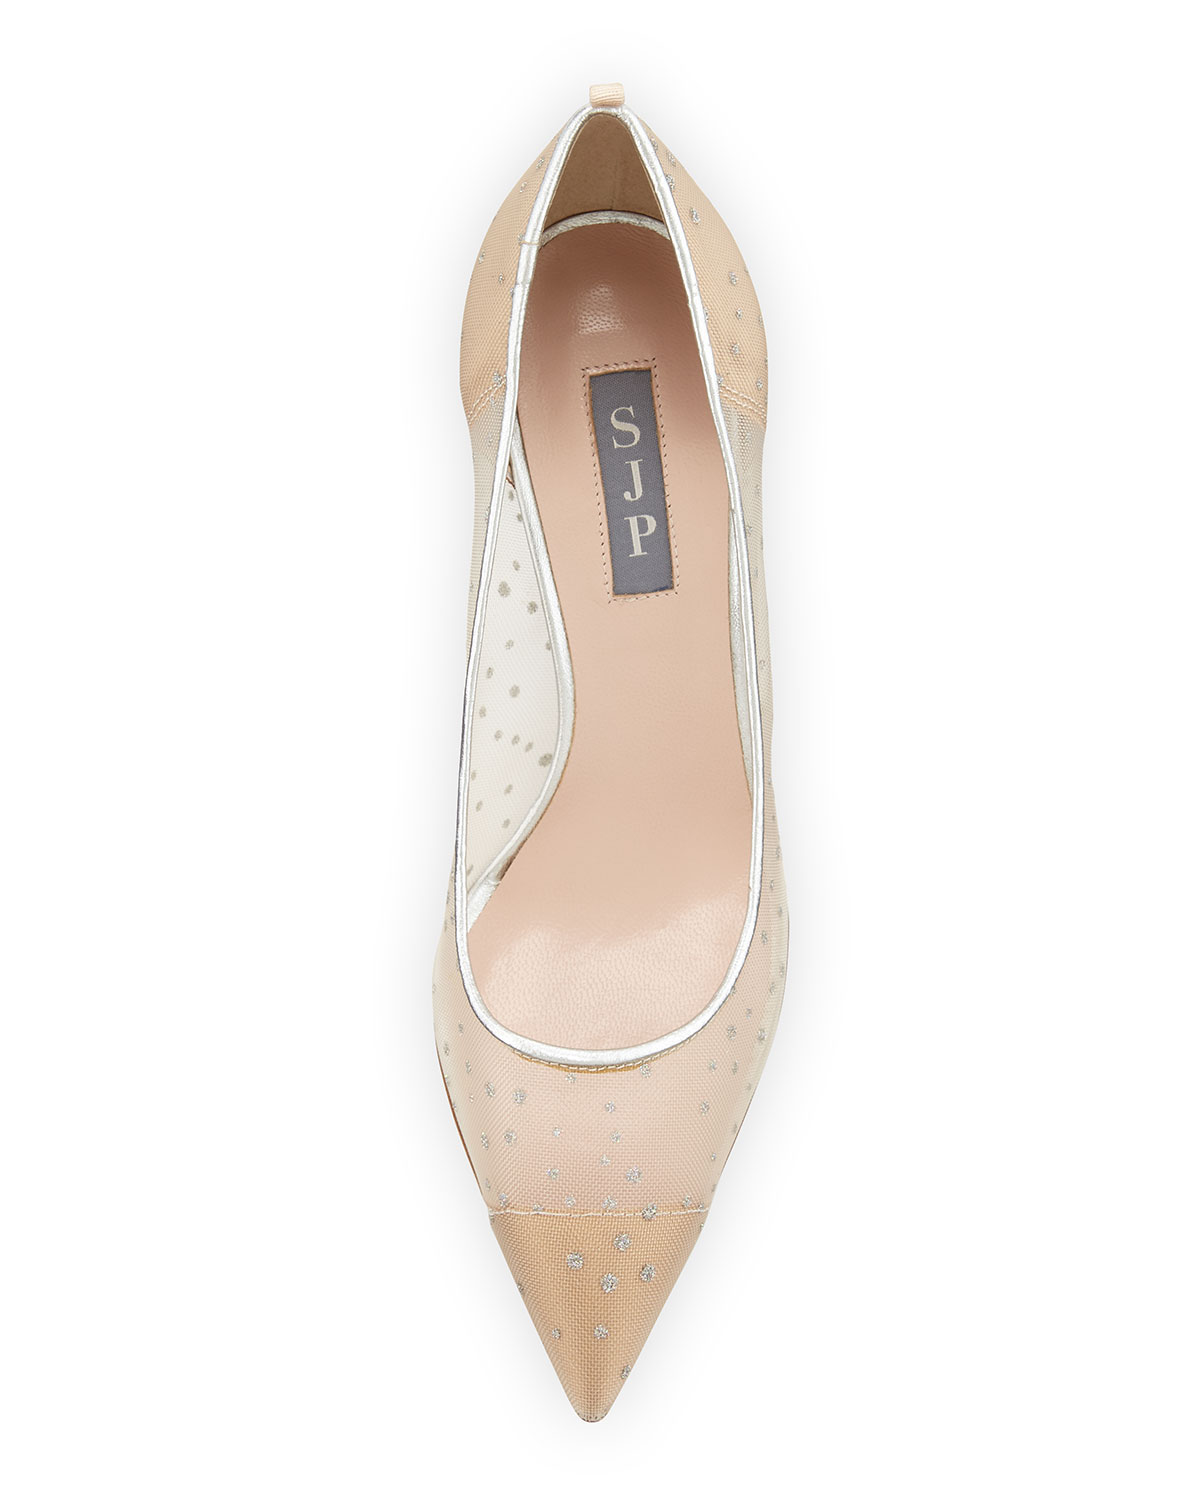 Glass 70mm Mesh Pumps by Sjp By Sarah Jessica Parker